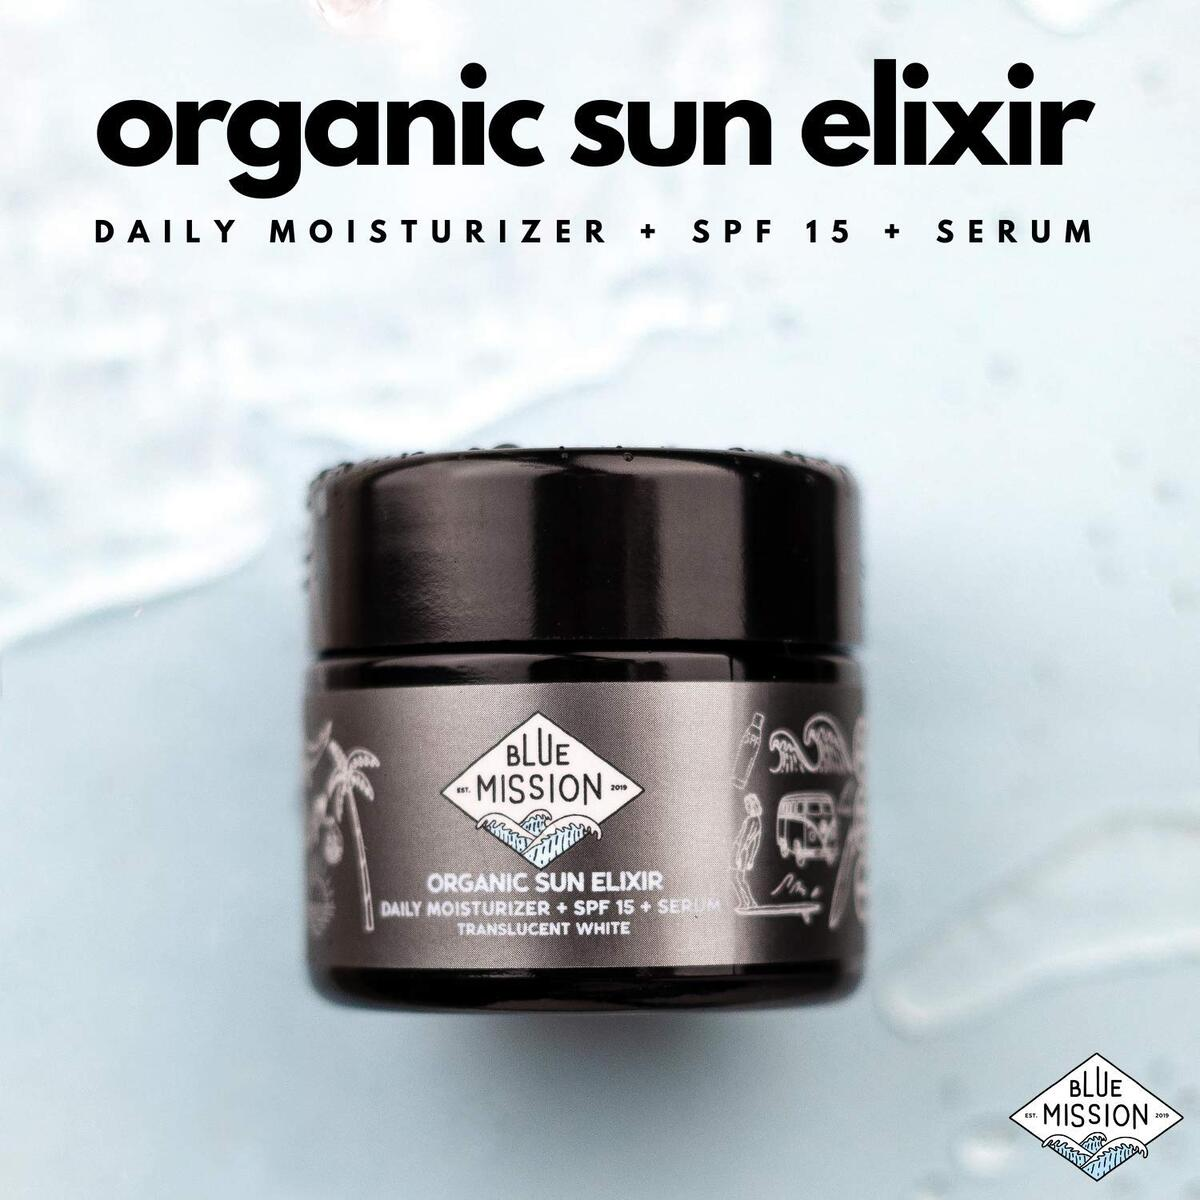 Blue Mission Vegan Daily Face Sunscreen - Our Organic Daily Moisturizer + SPF 15 + Serum Is Vegan, Reef-Safe & Glass Jar. Absolutely ALL GOOD for your skin and the planet!